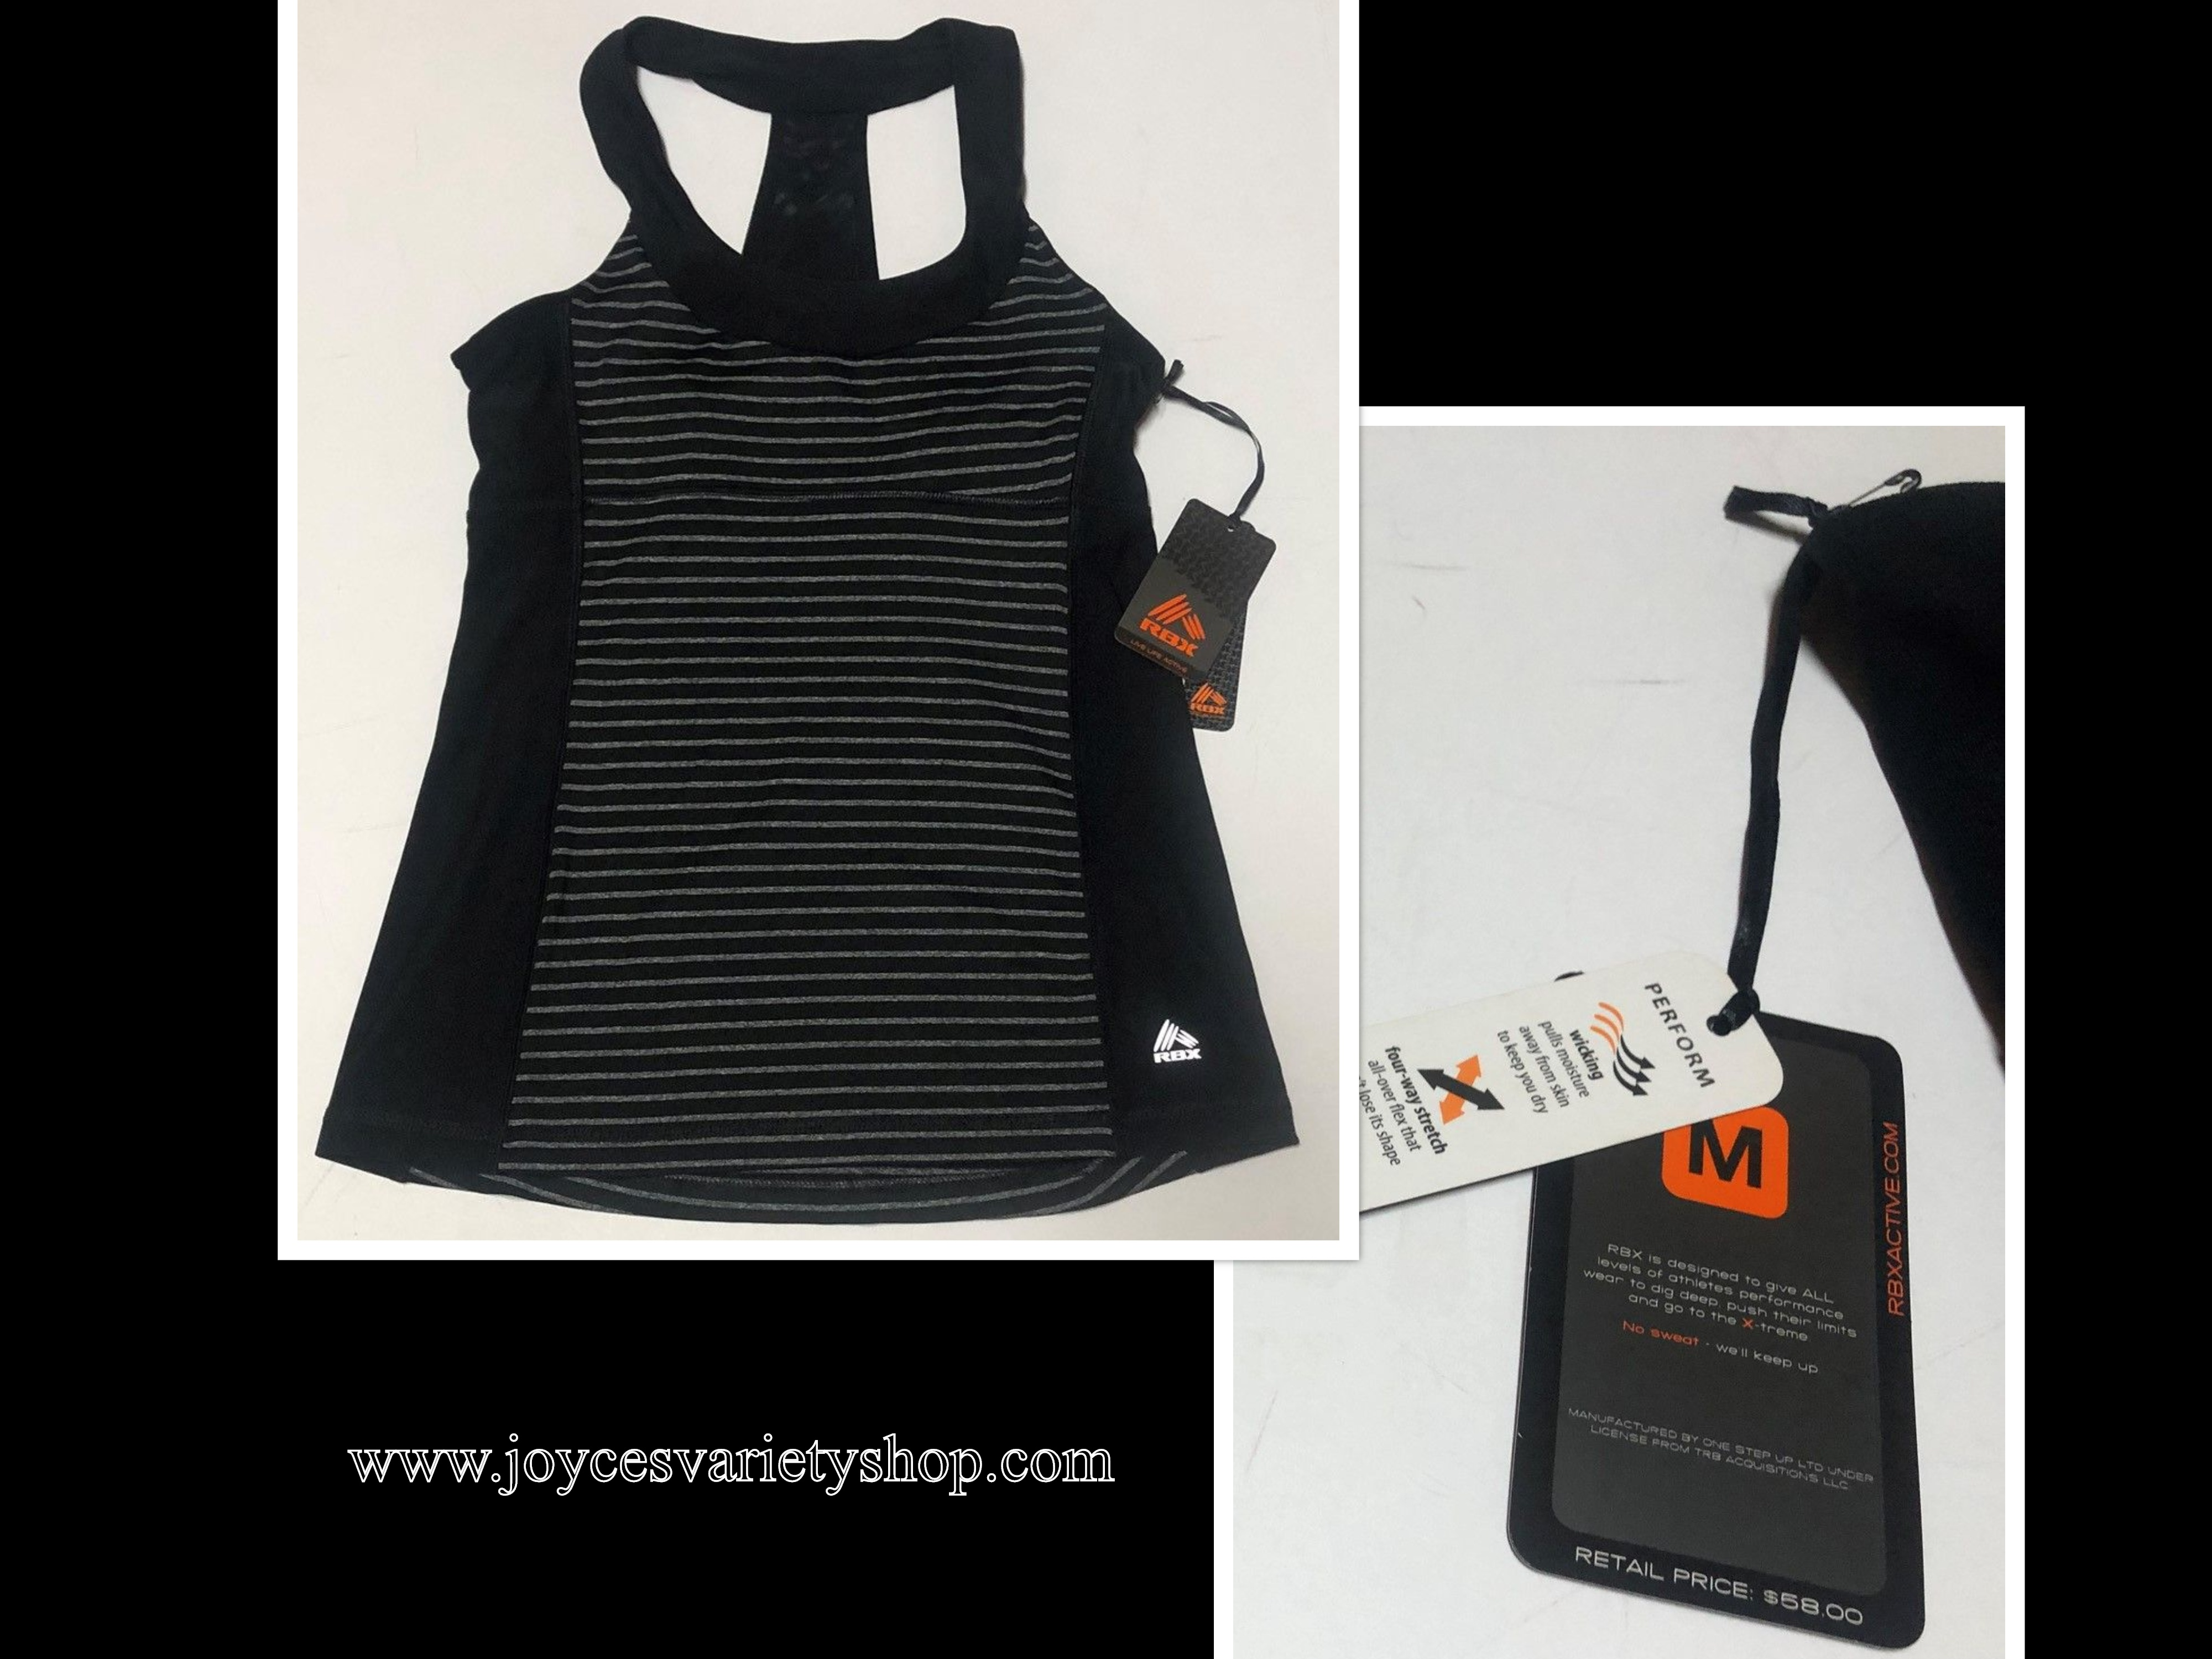 RBX Activewear Top Women's Sz M Black & Gray Striped Racer Back